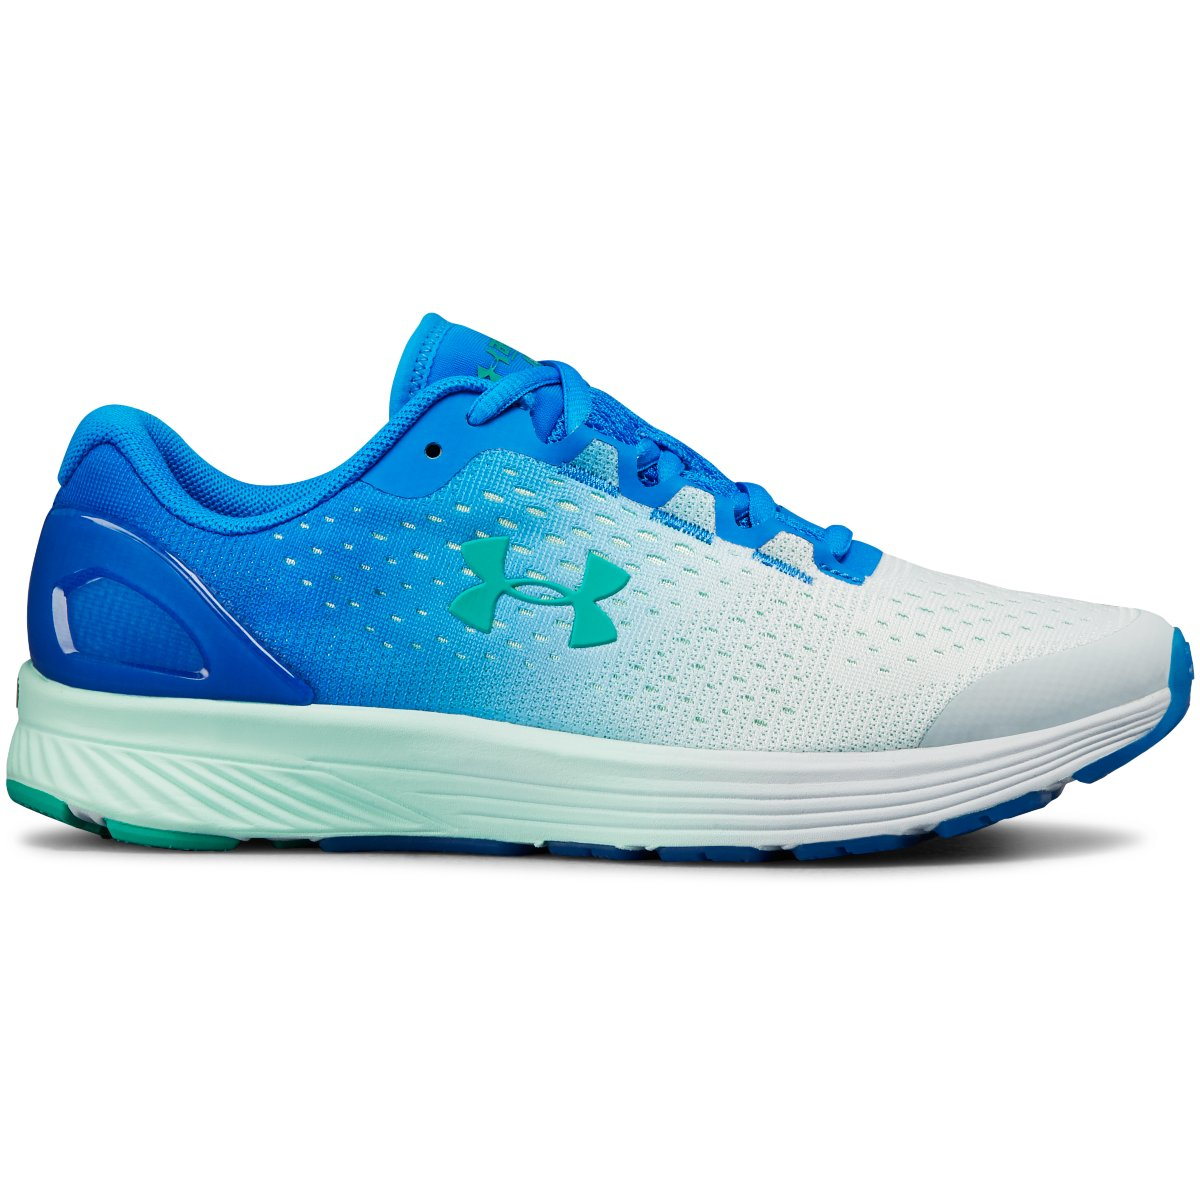 Under Armour Girls Charged Bandit 4 Run Shoe | Running shoes